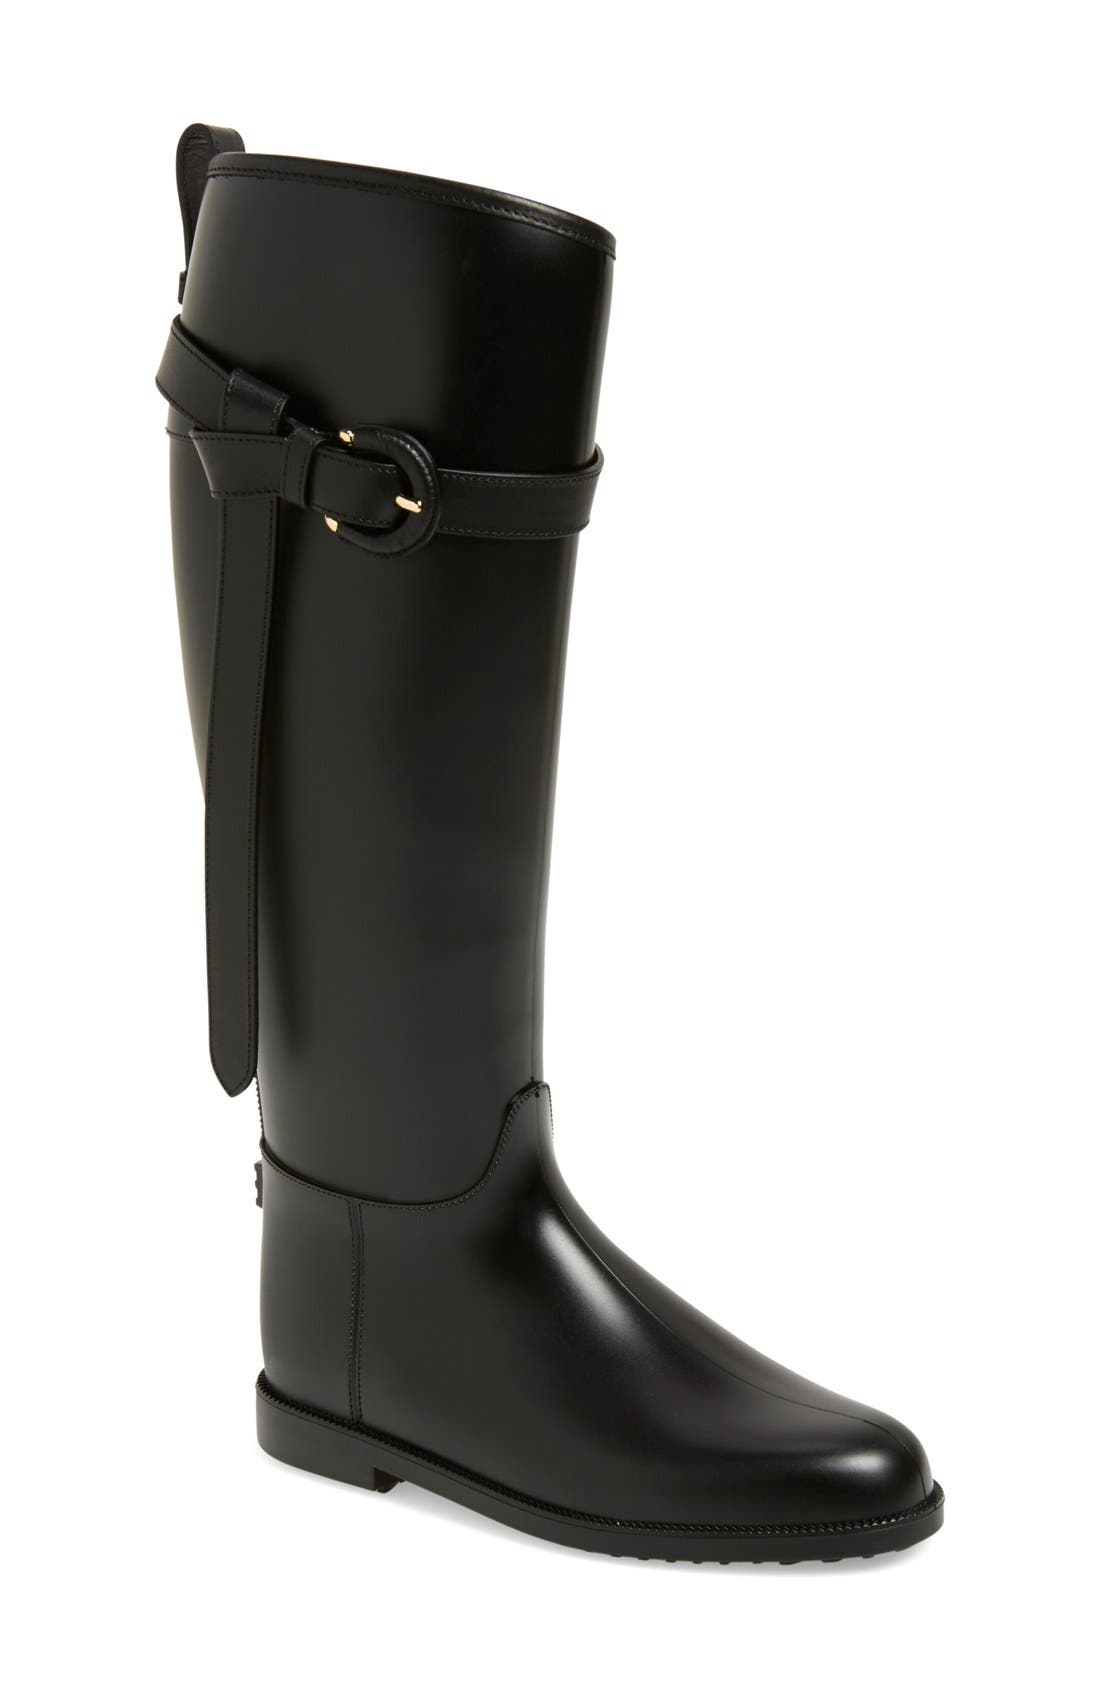 burberry black leather boots